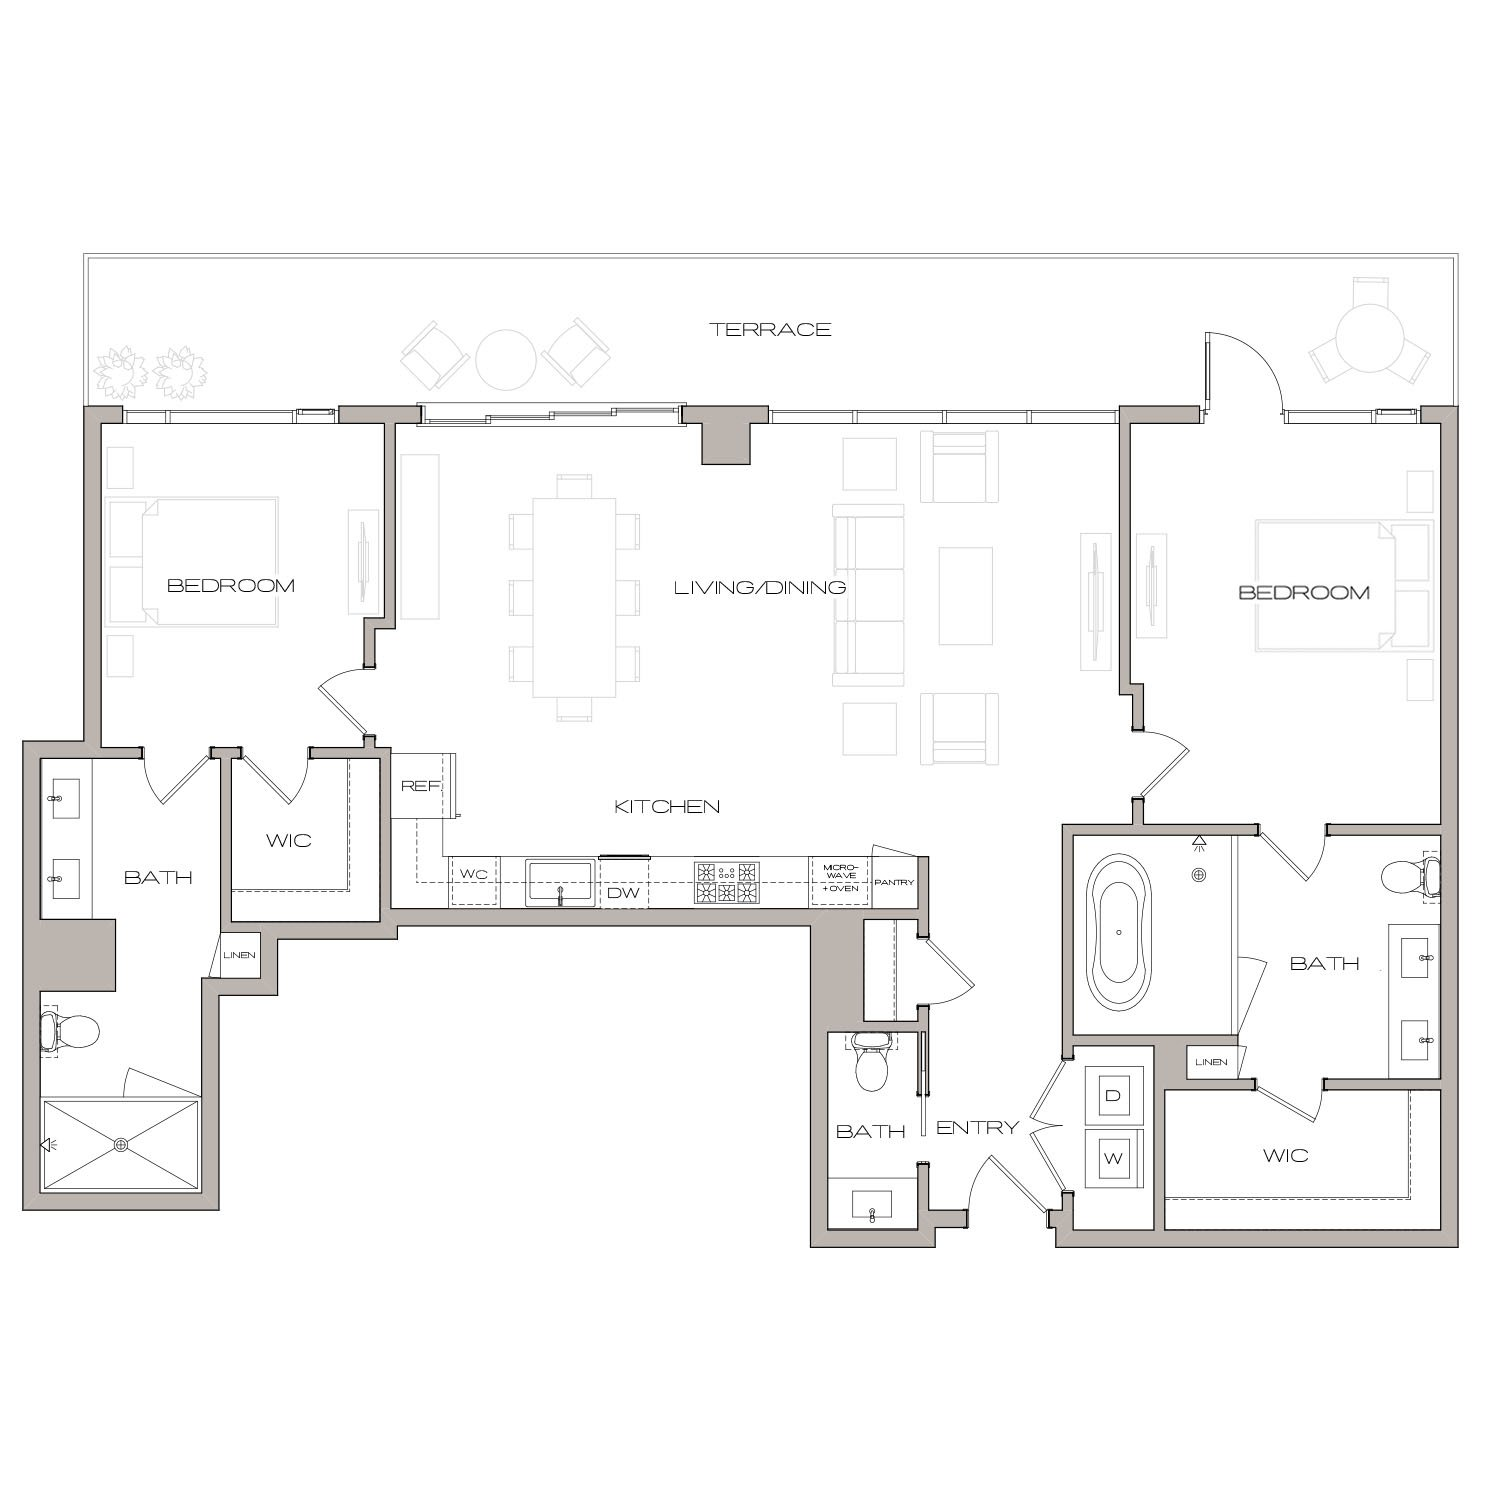 P H 5 floor plan diagram. Penthouse apartment with two bedrooms, two and a half bathrooms, an open kitchen living and dining area, a terrace, and a washer dryer.